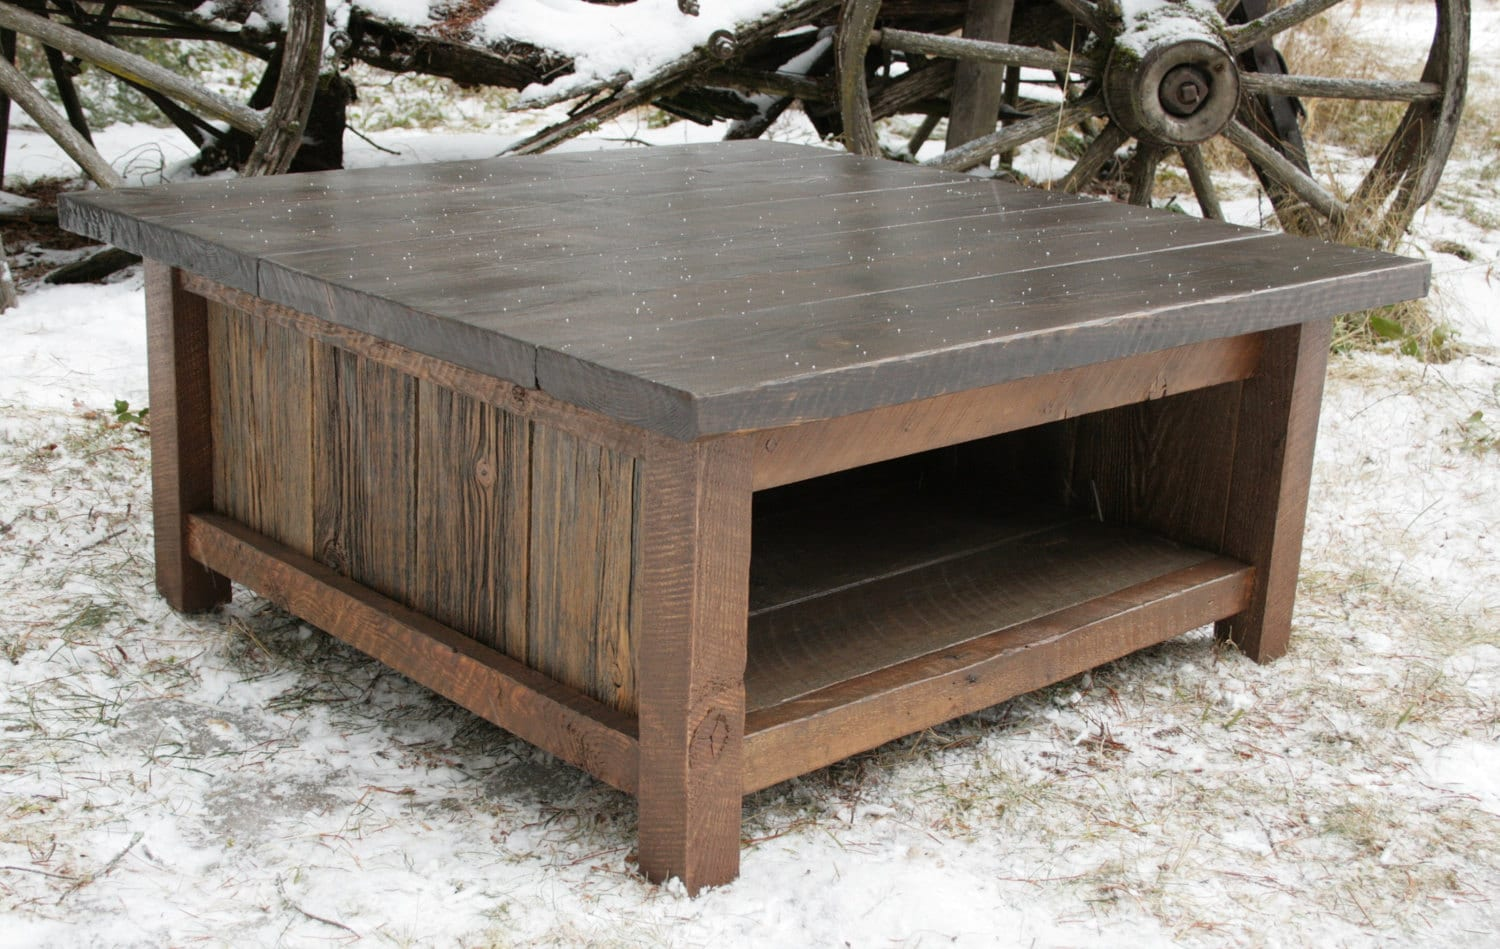 Rustic modern reclaimed coffee table by echopeakdesign on etsy Coffee tables rustic